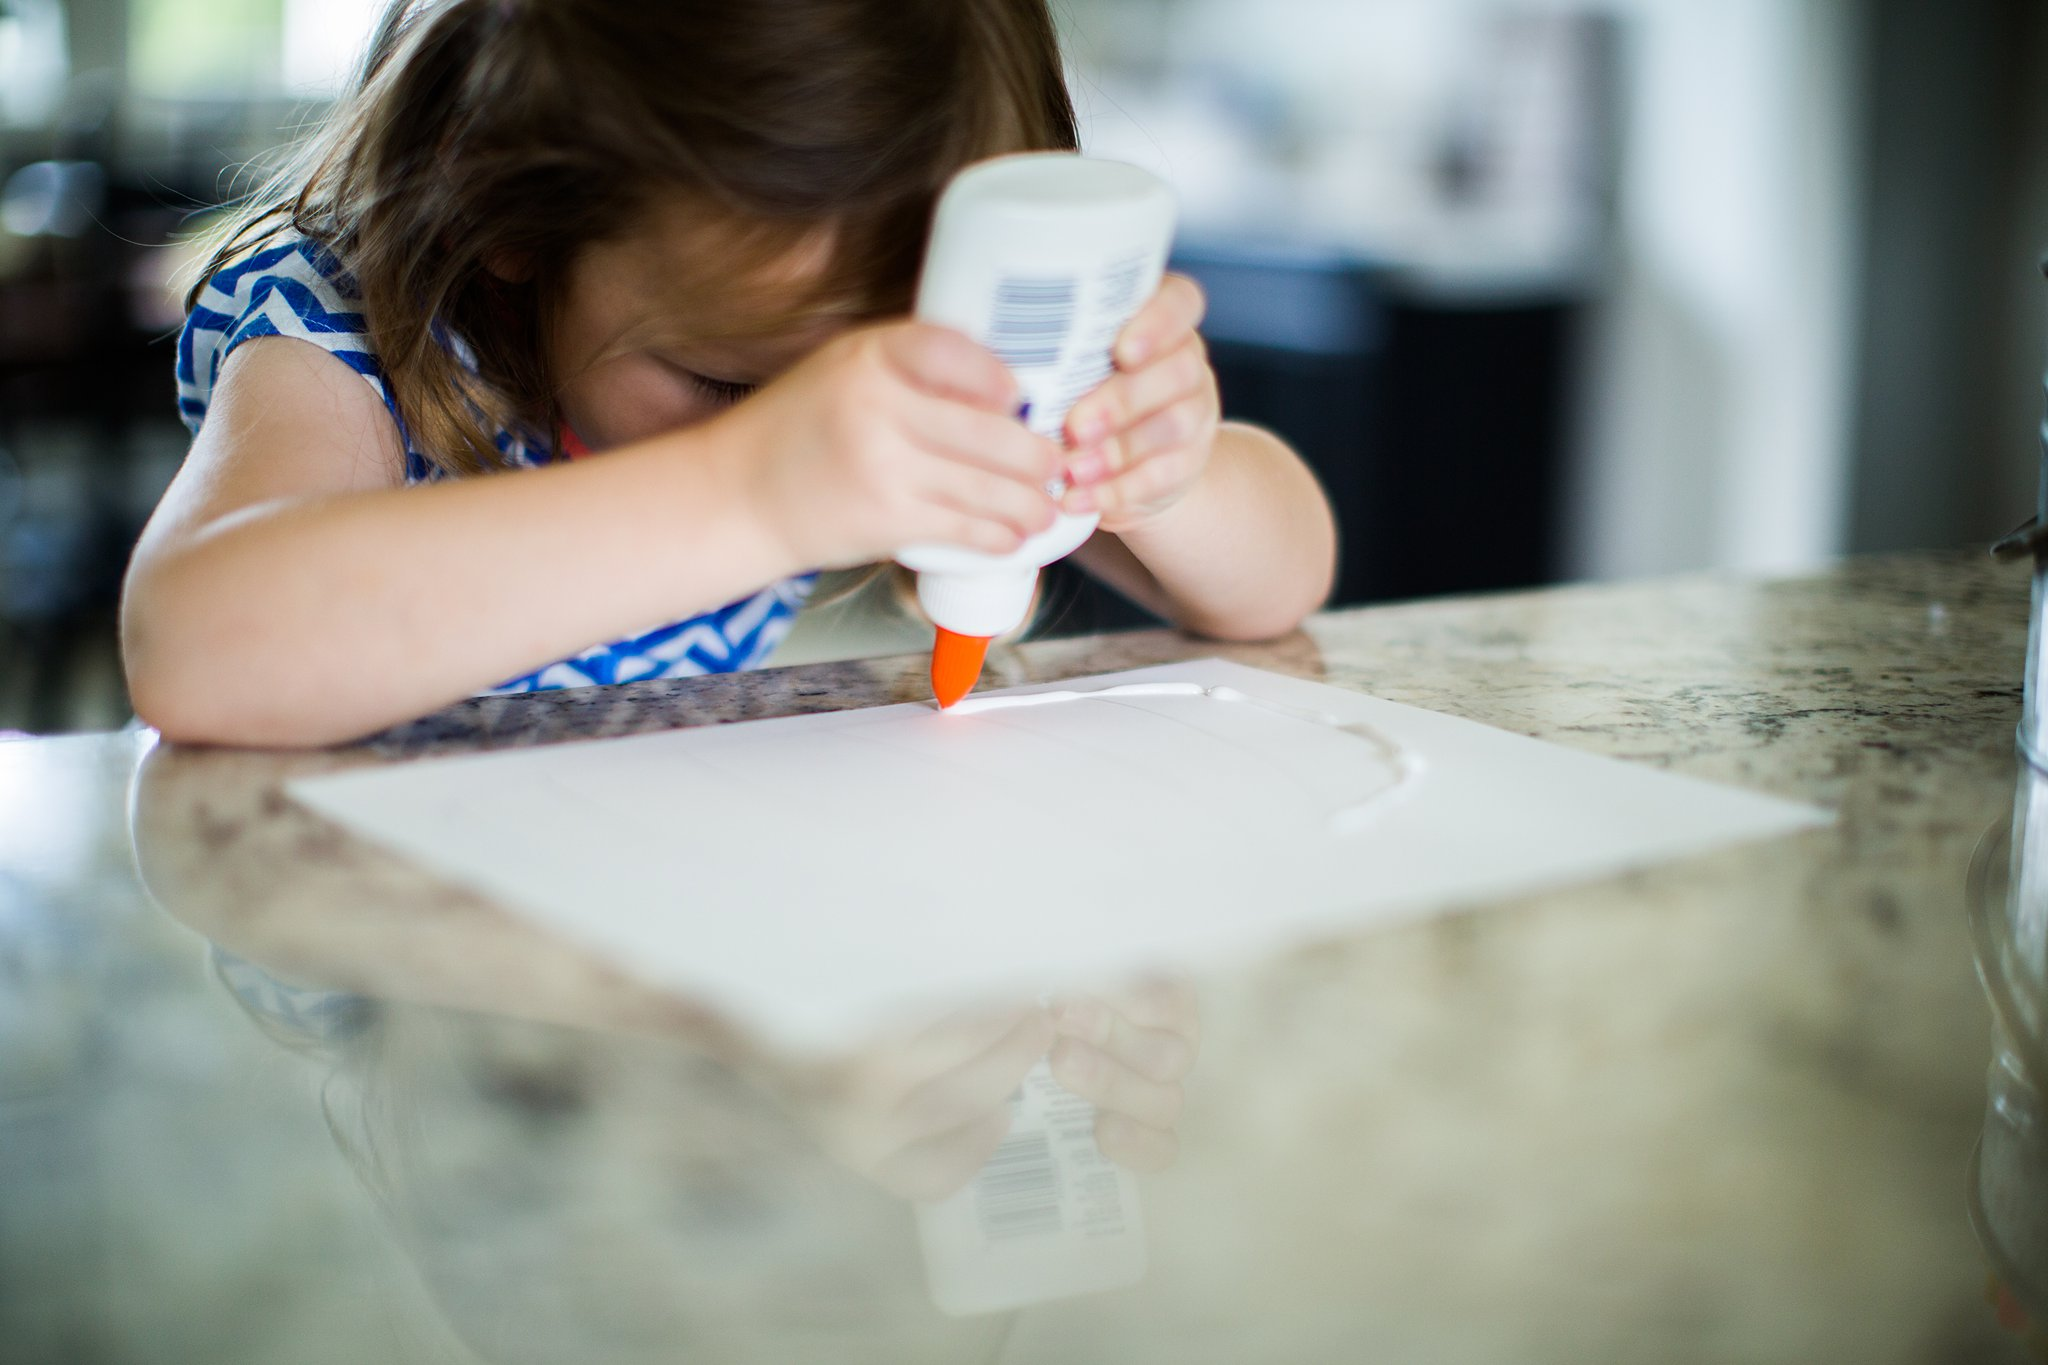 preschooler using glue for salt painting design